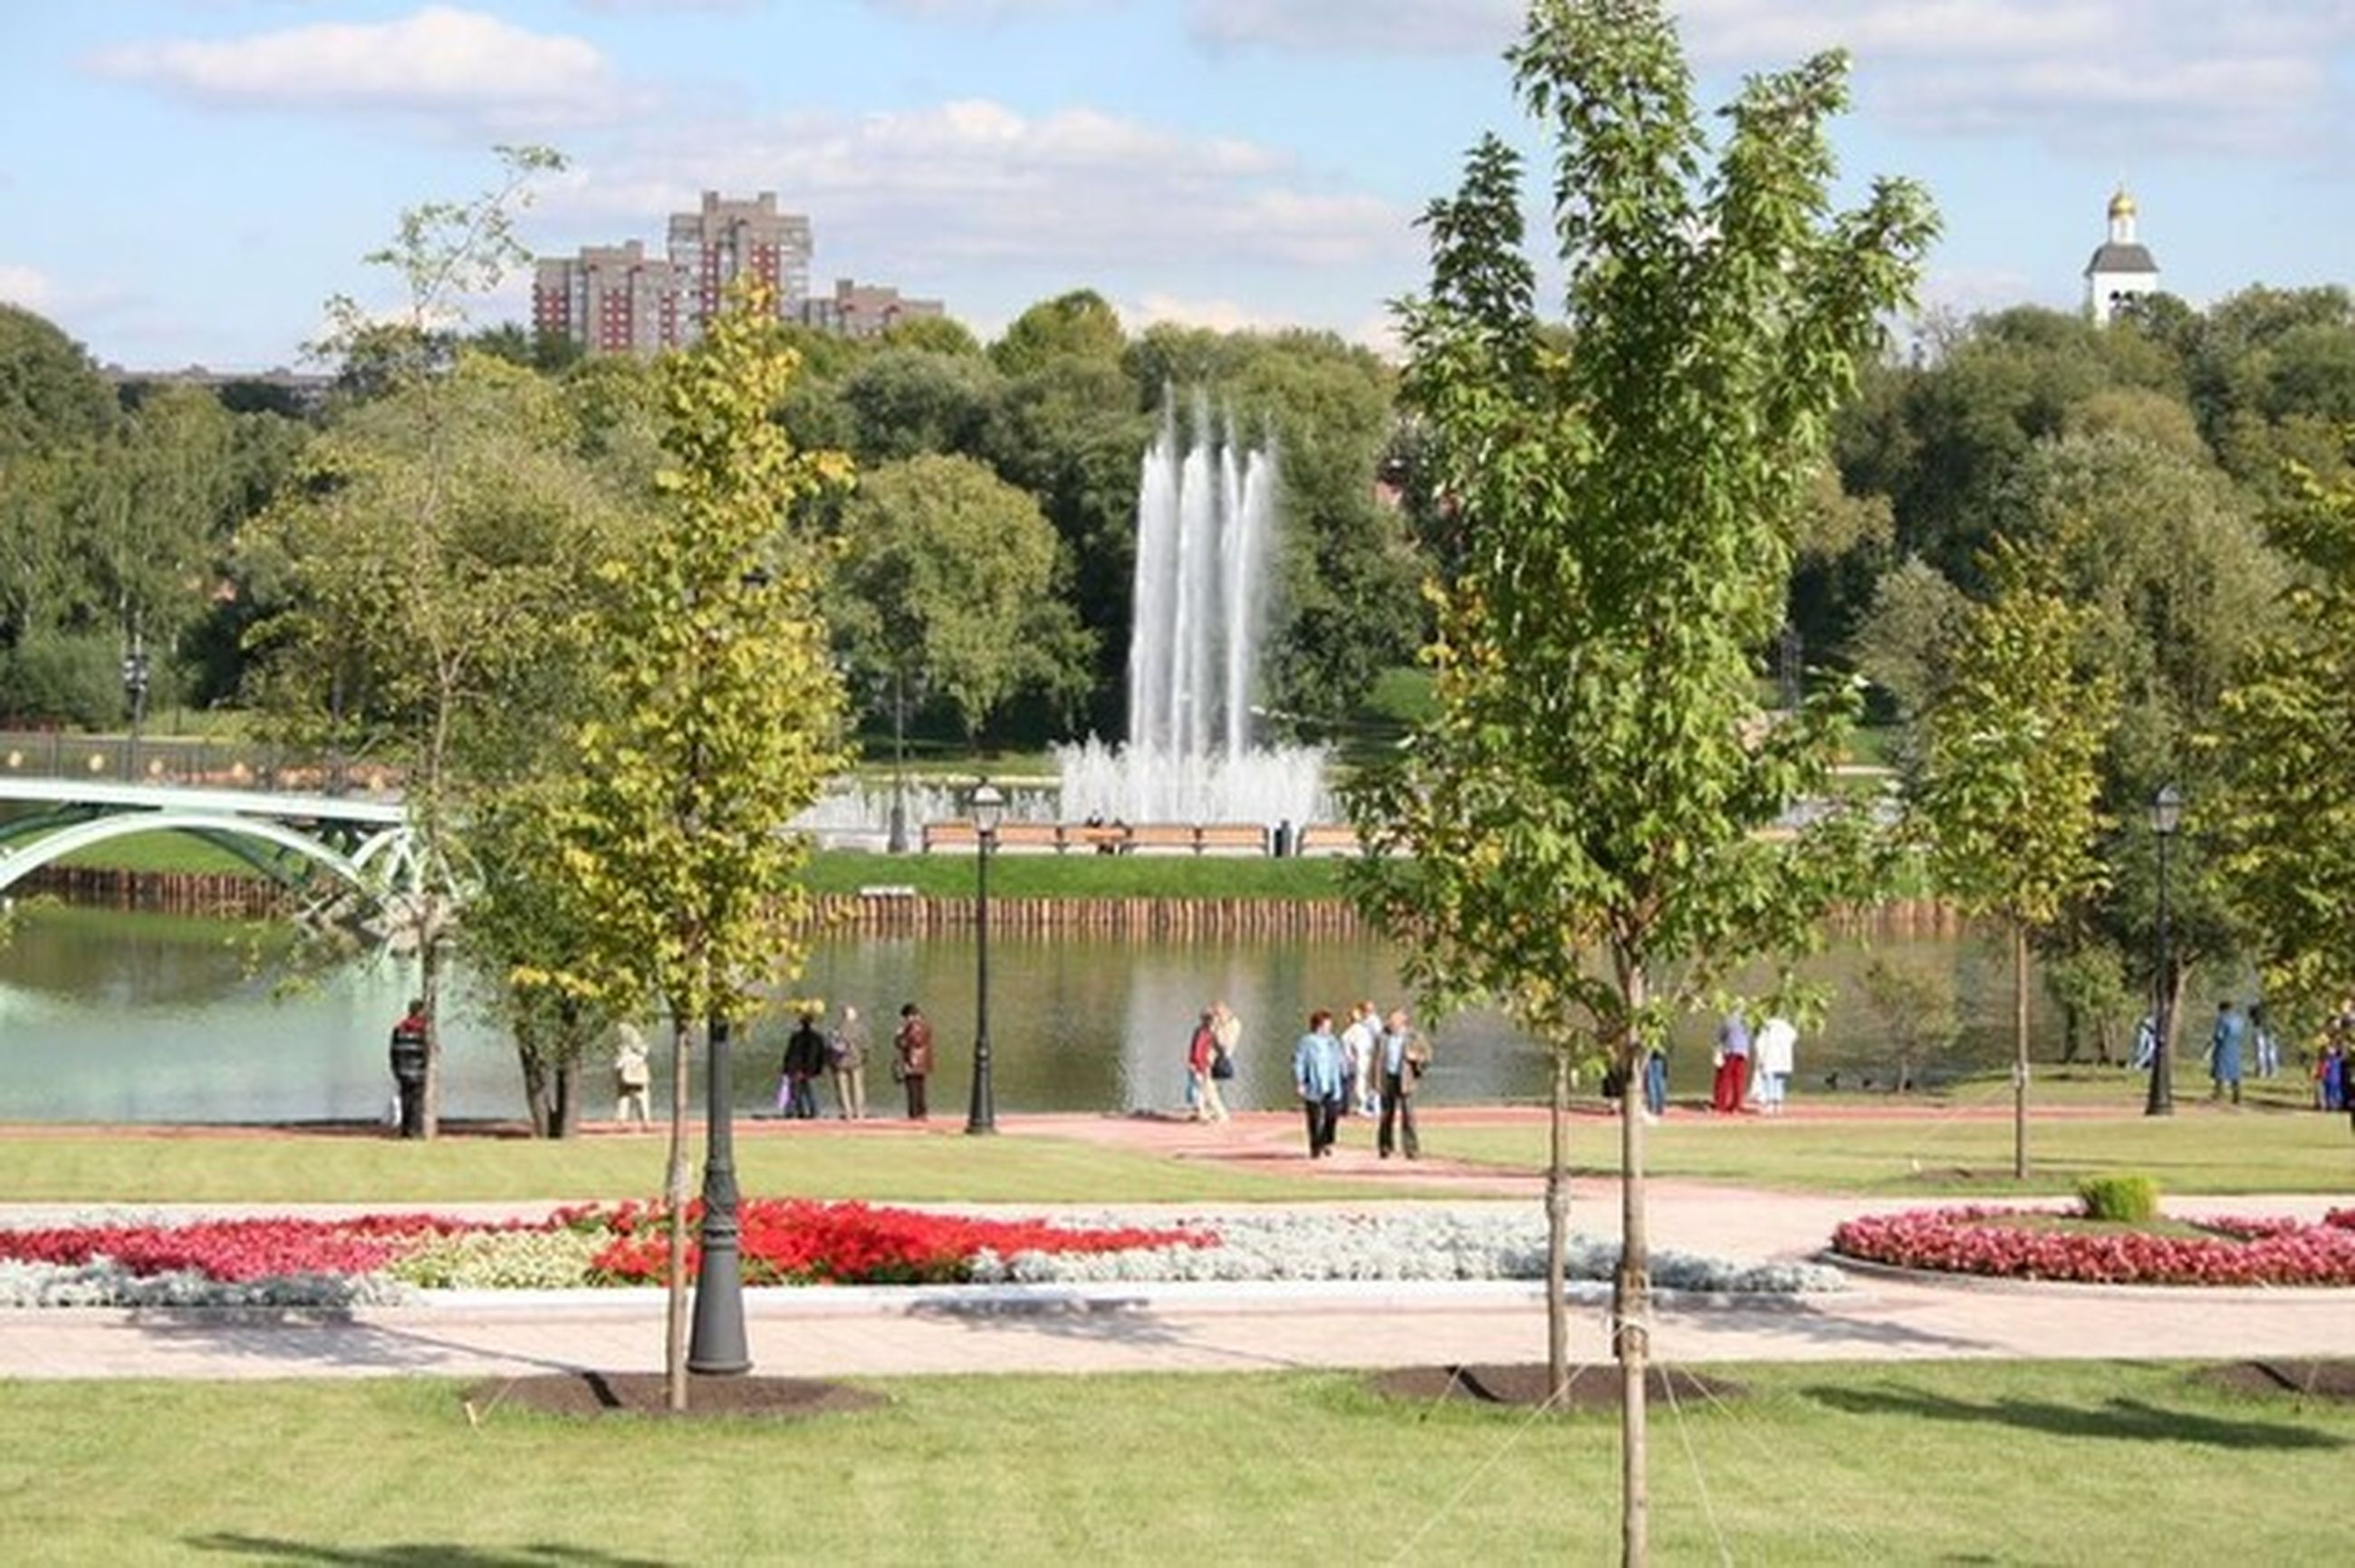 tree, fountain, large group of people, park - man made space, architecture, built structure, person, water, tourist, men, tourism, travel destinations, lifestyles, leisure activity, famous place, building exterior, motion, spraying, sky